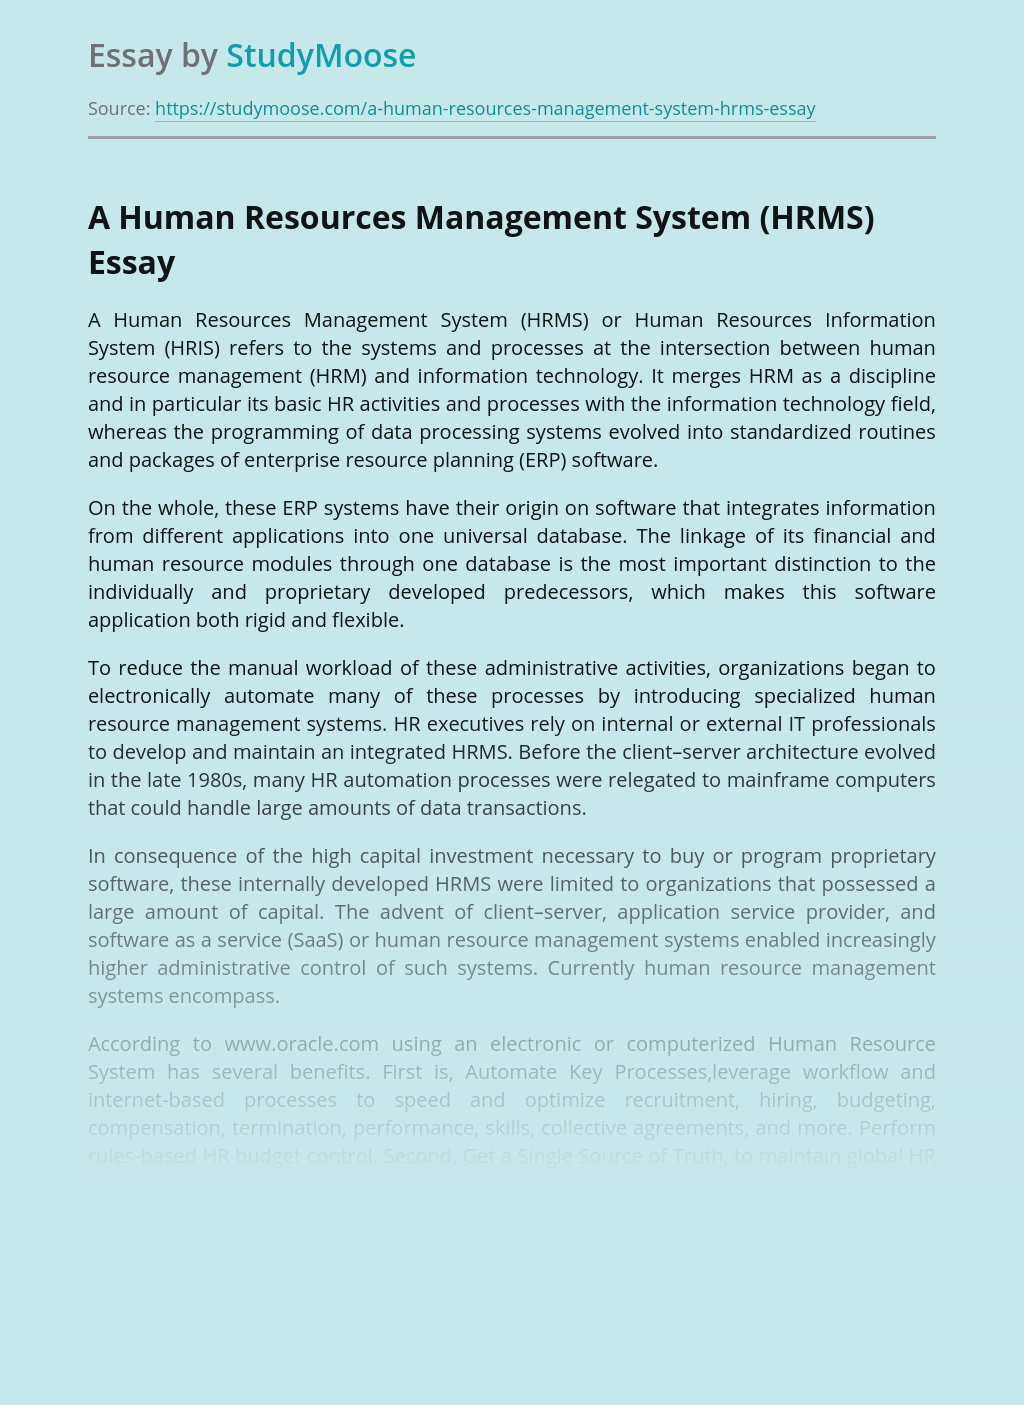 A Human Resources Management System (HRMS)